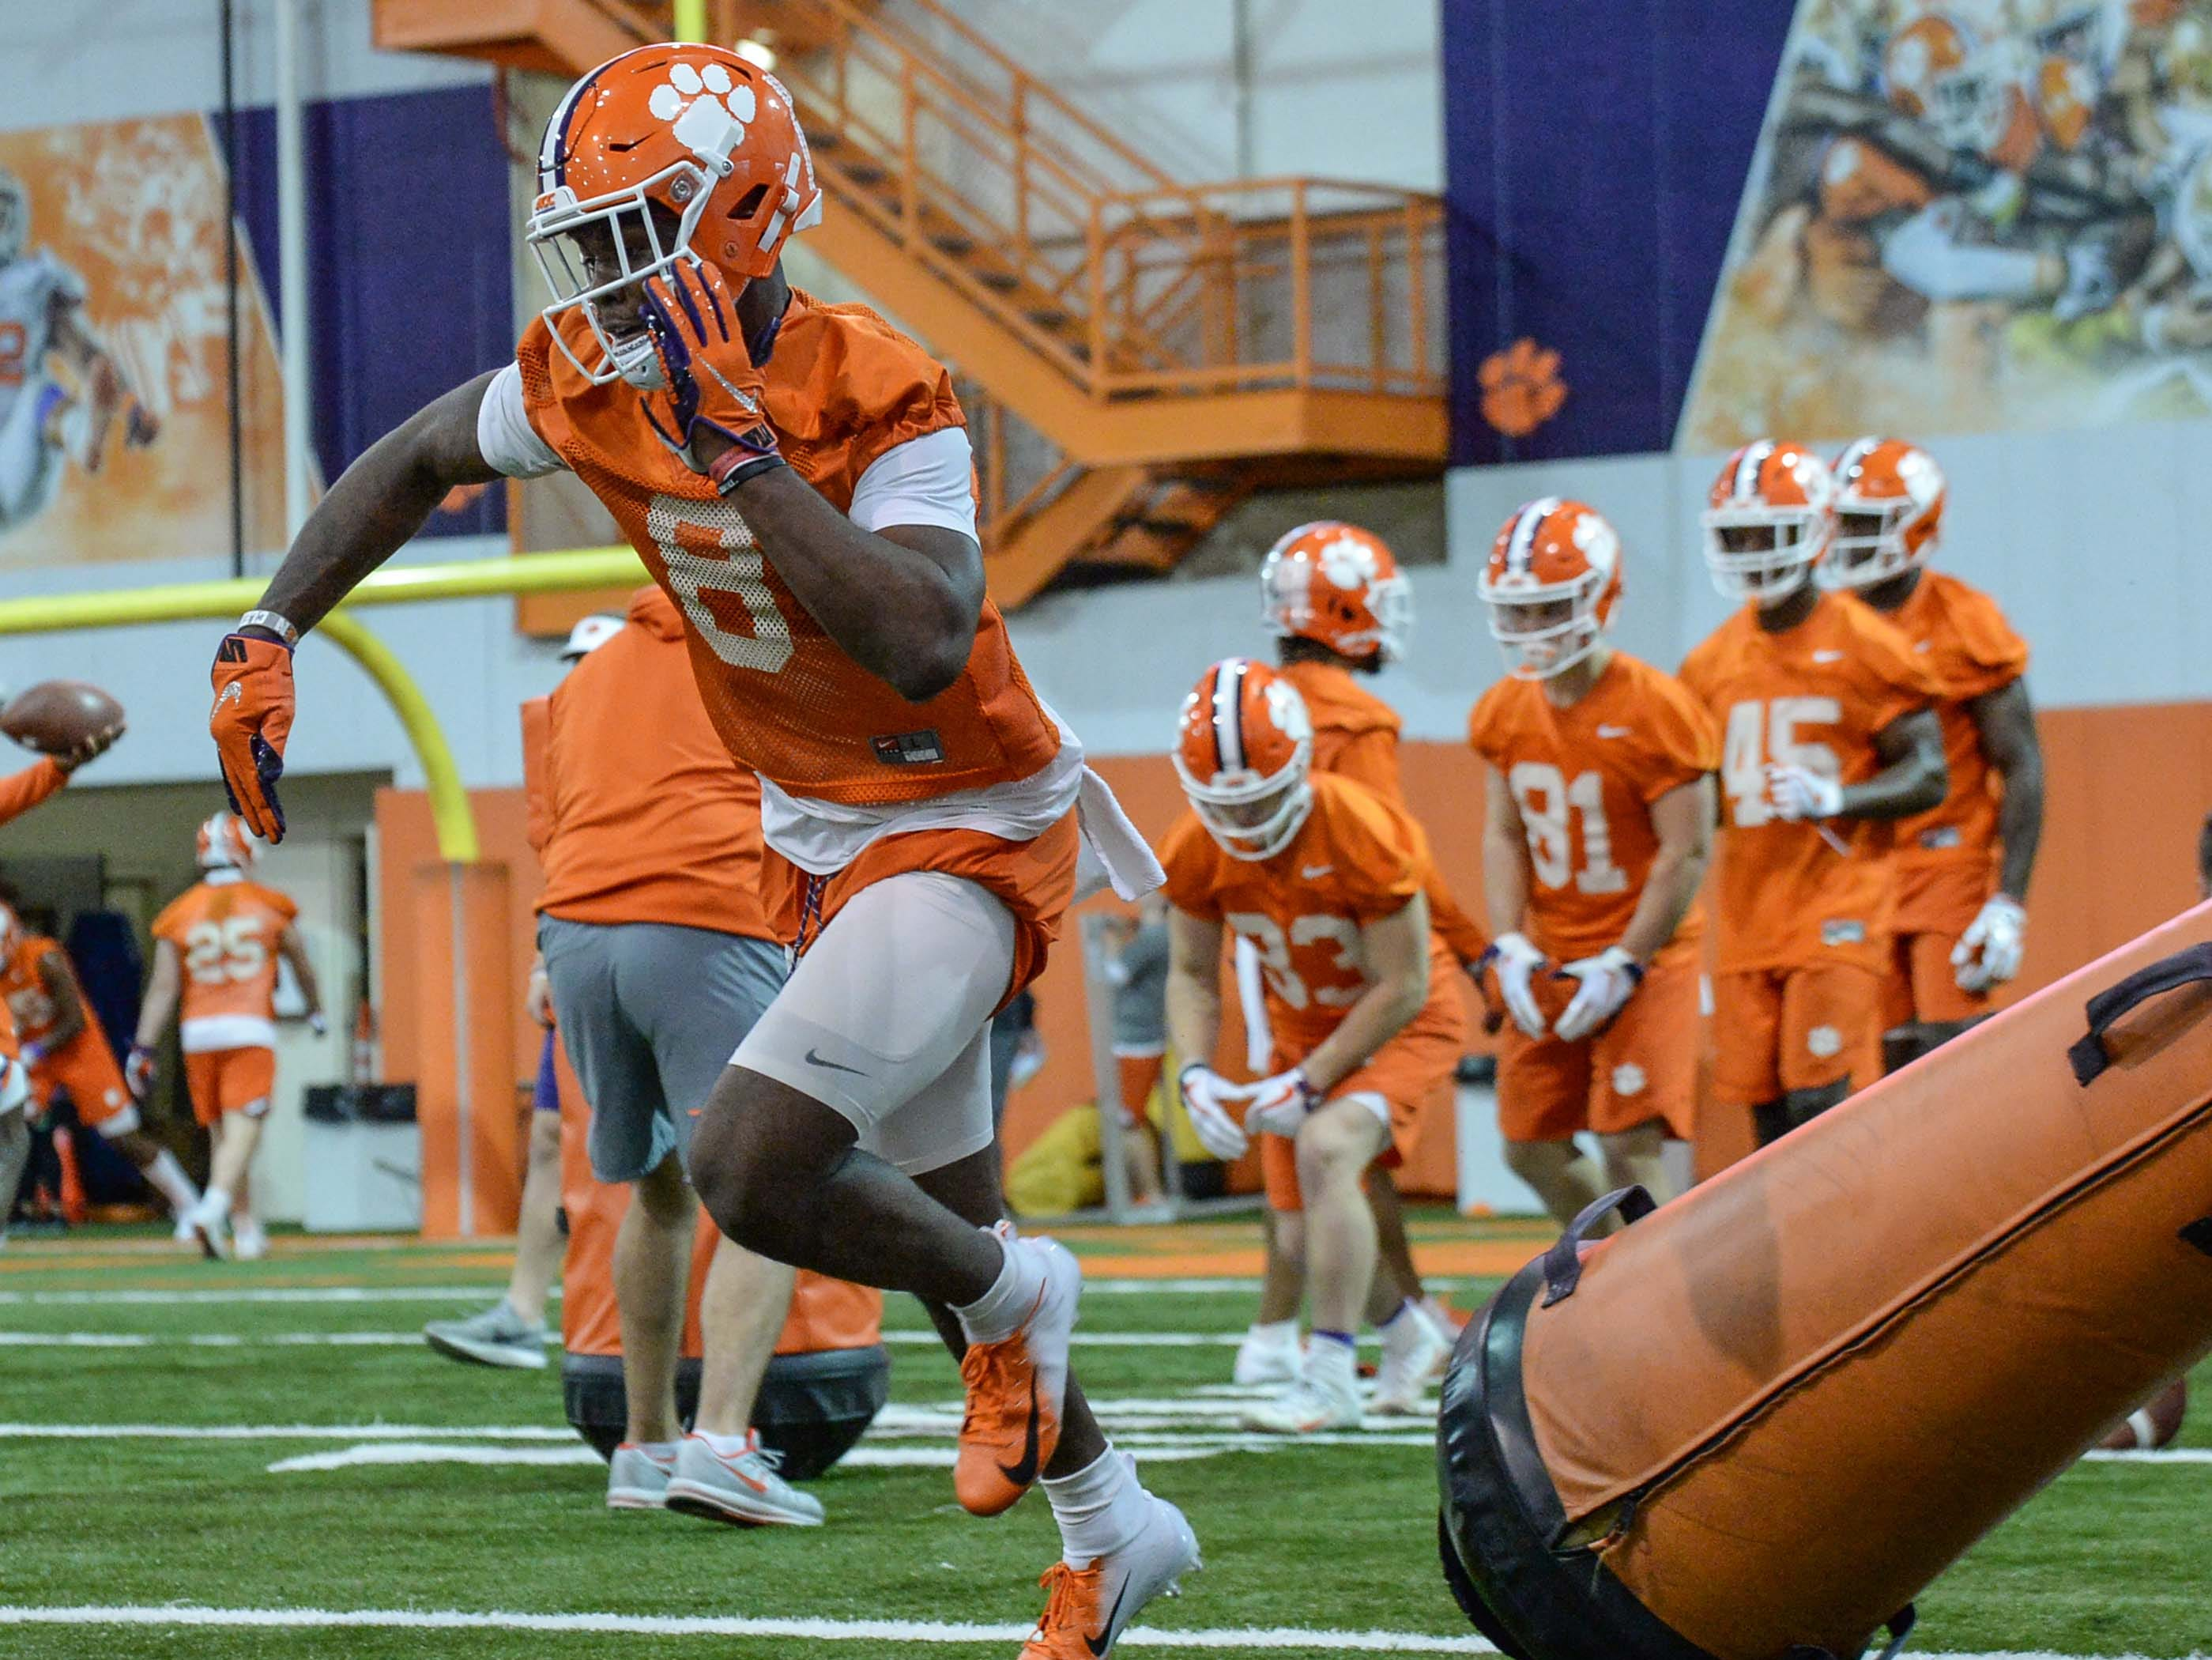 Clemson wide receiver Justyn Ross (8) runs in a drill during practice at the Poe Indoor Facility in Clemson Friday.